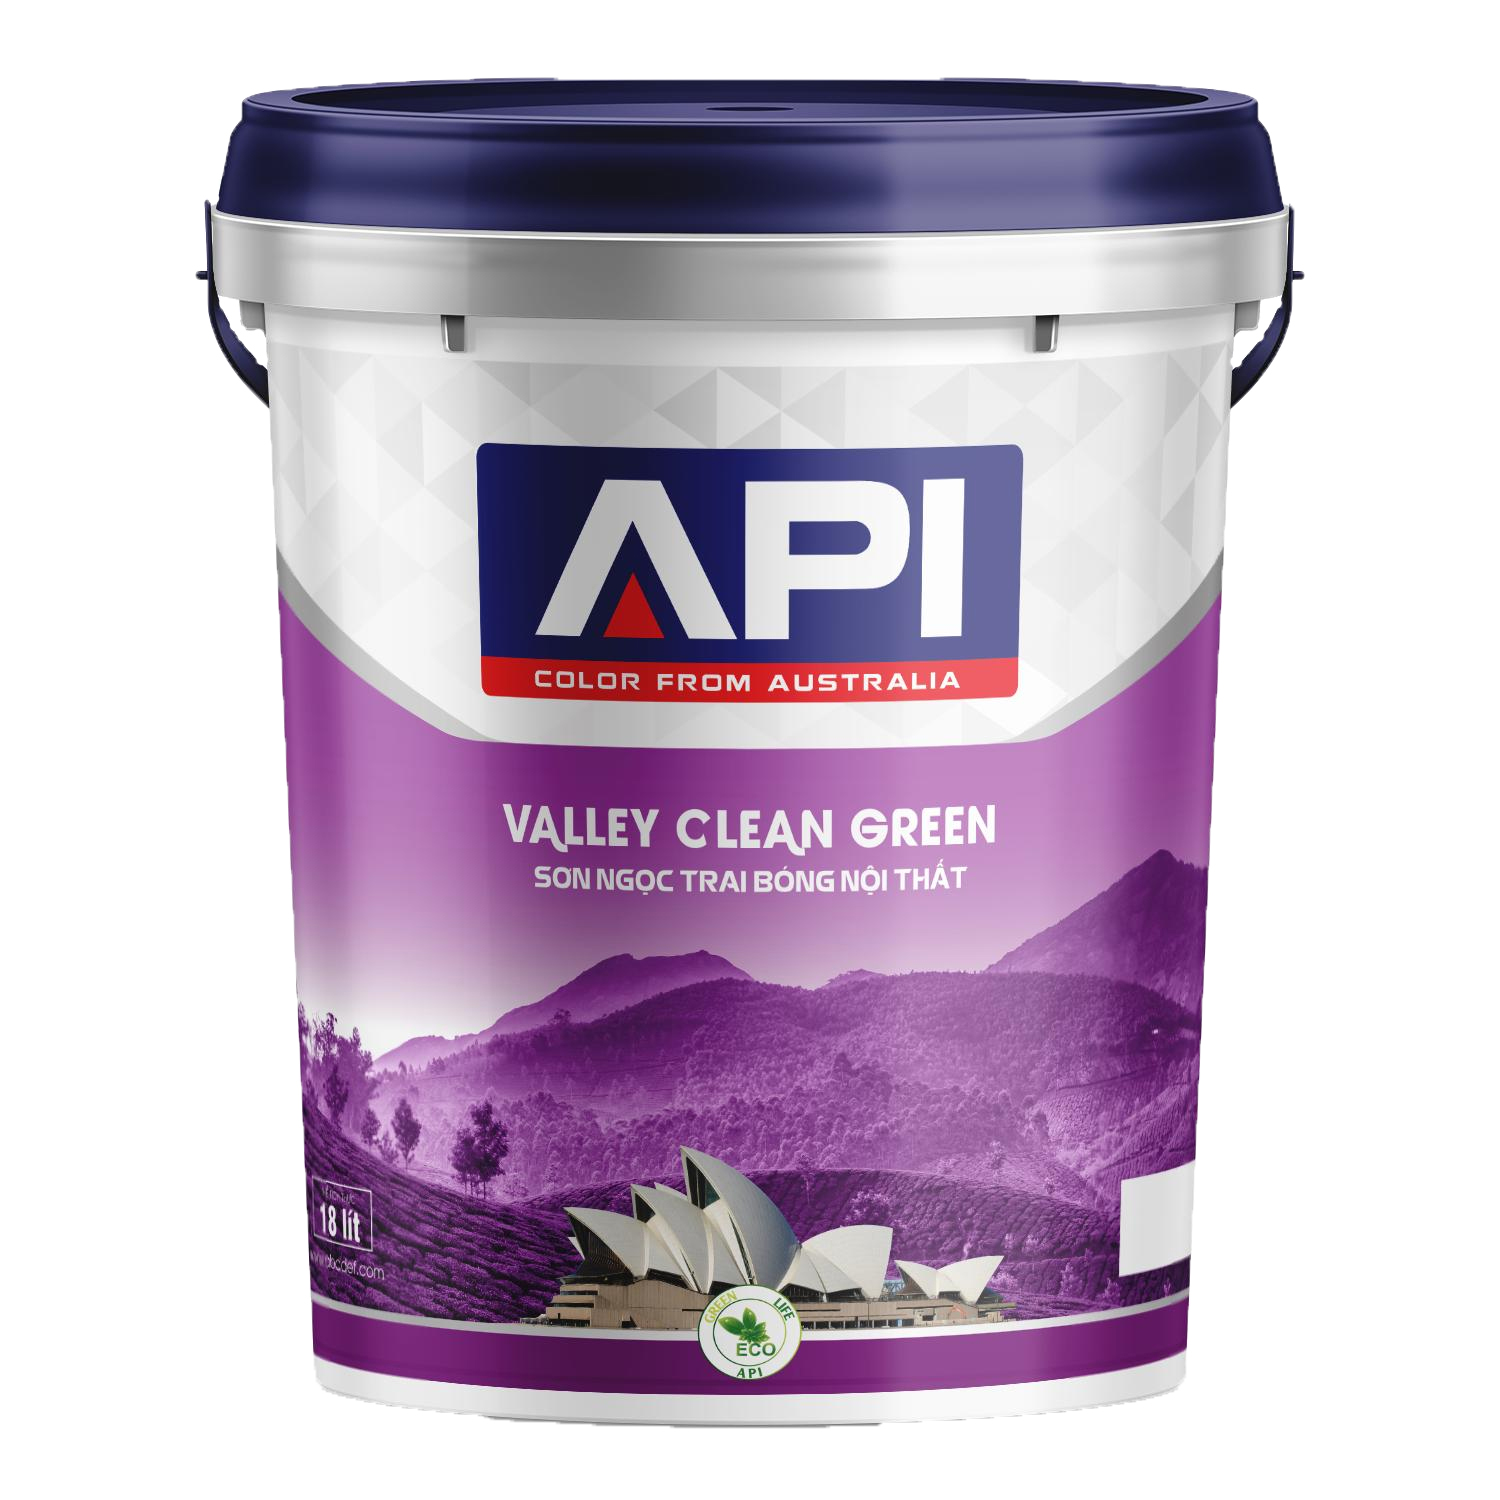 API - VALLEY CLEAN GREEN